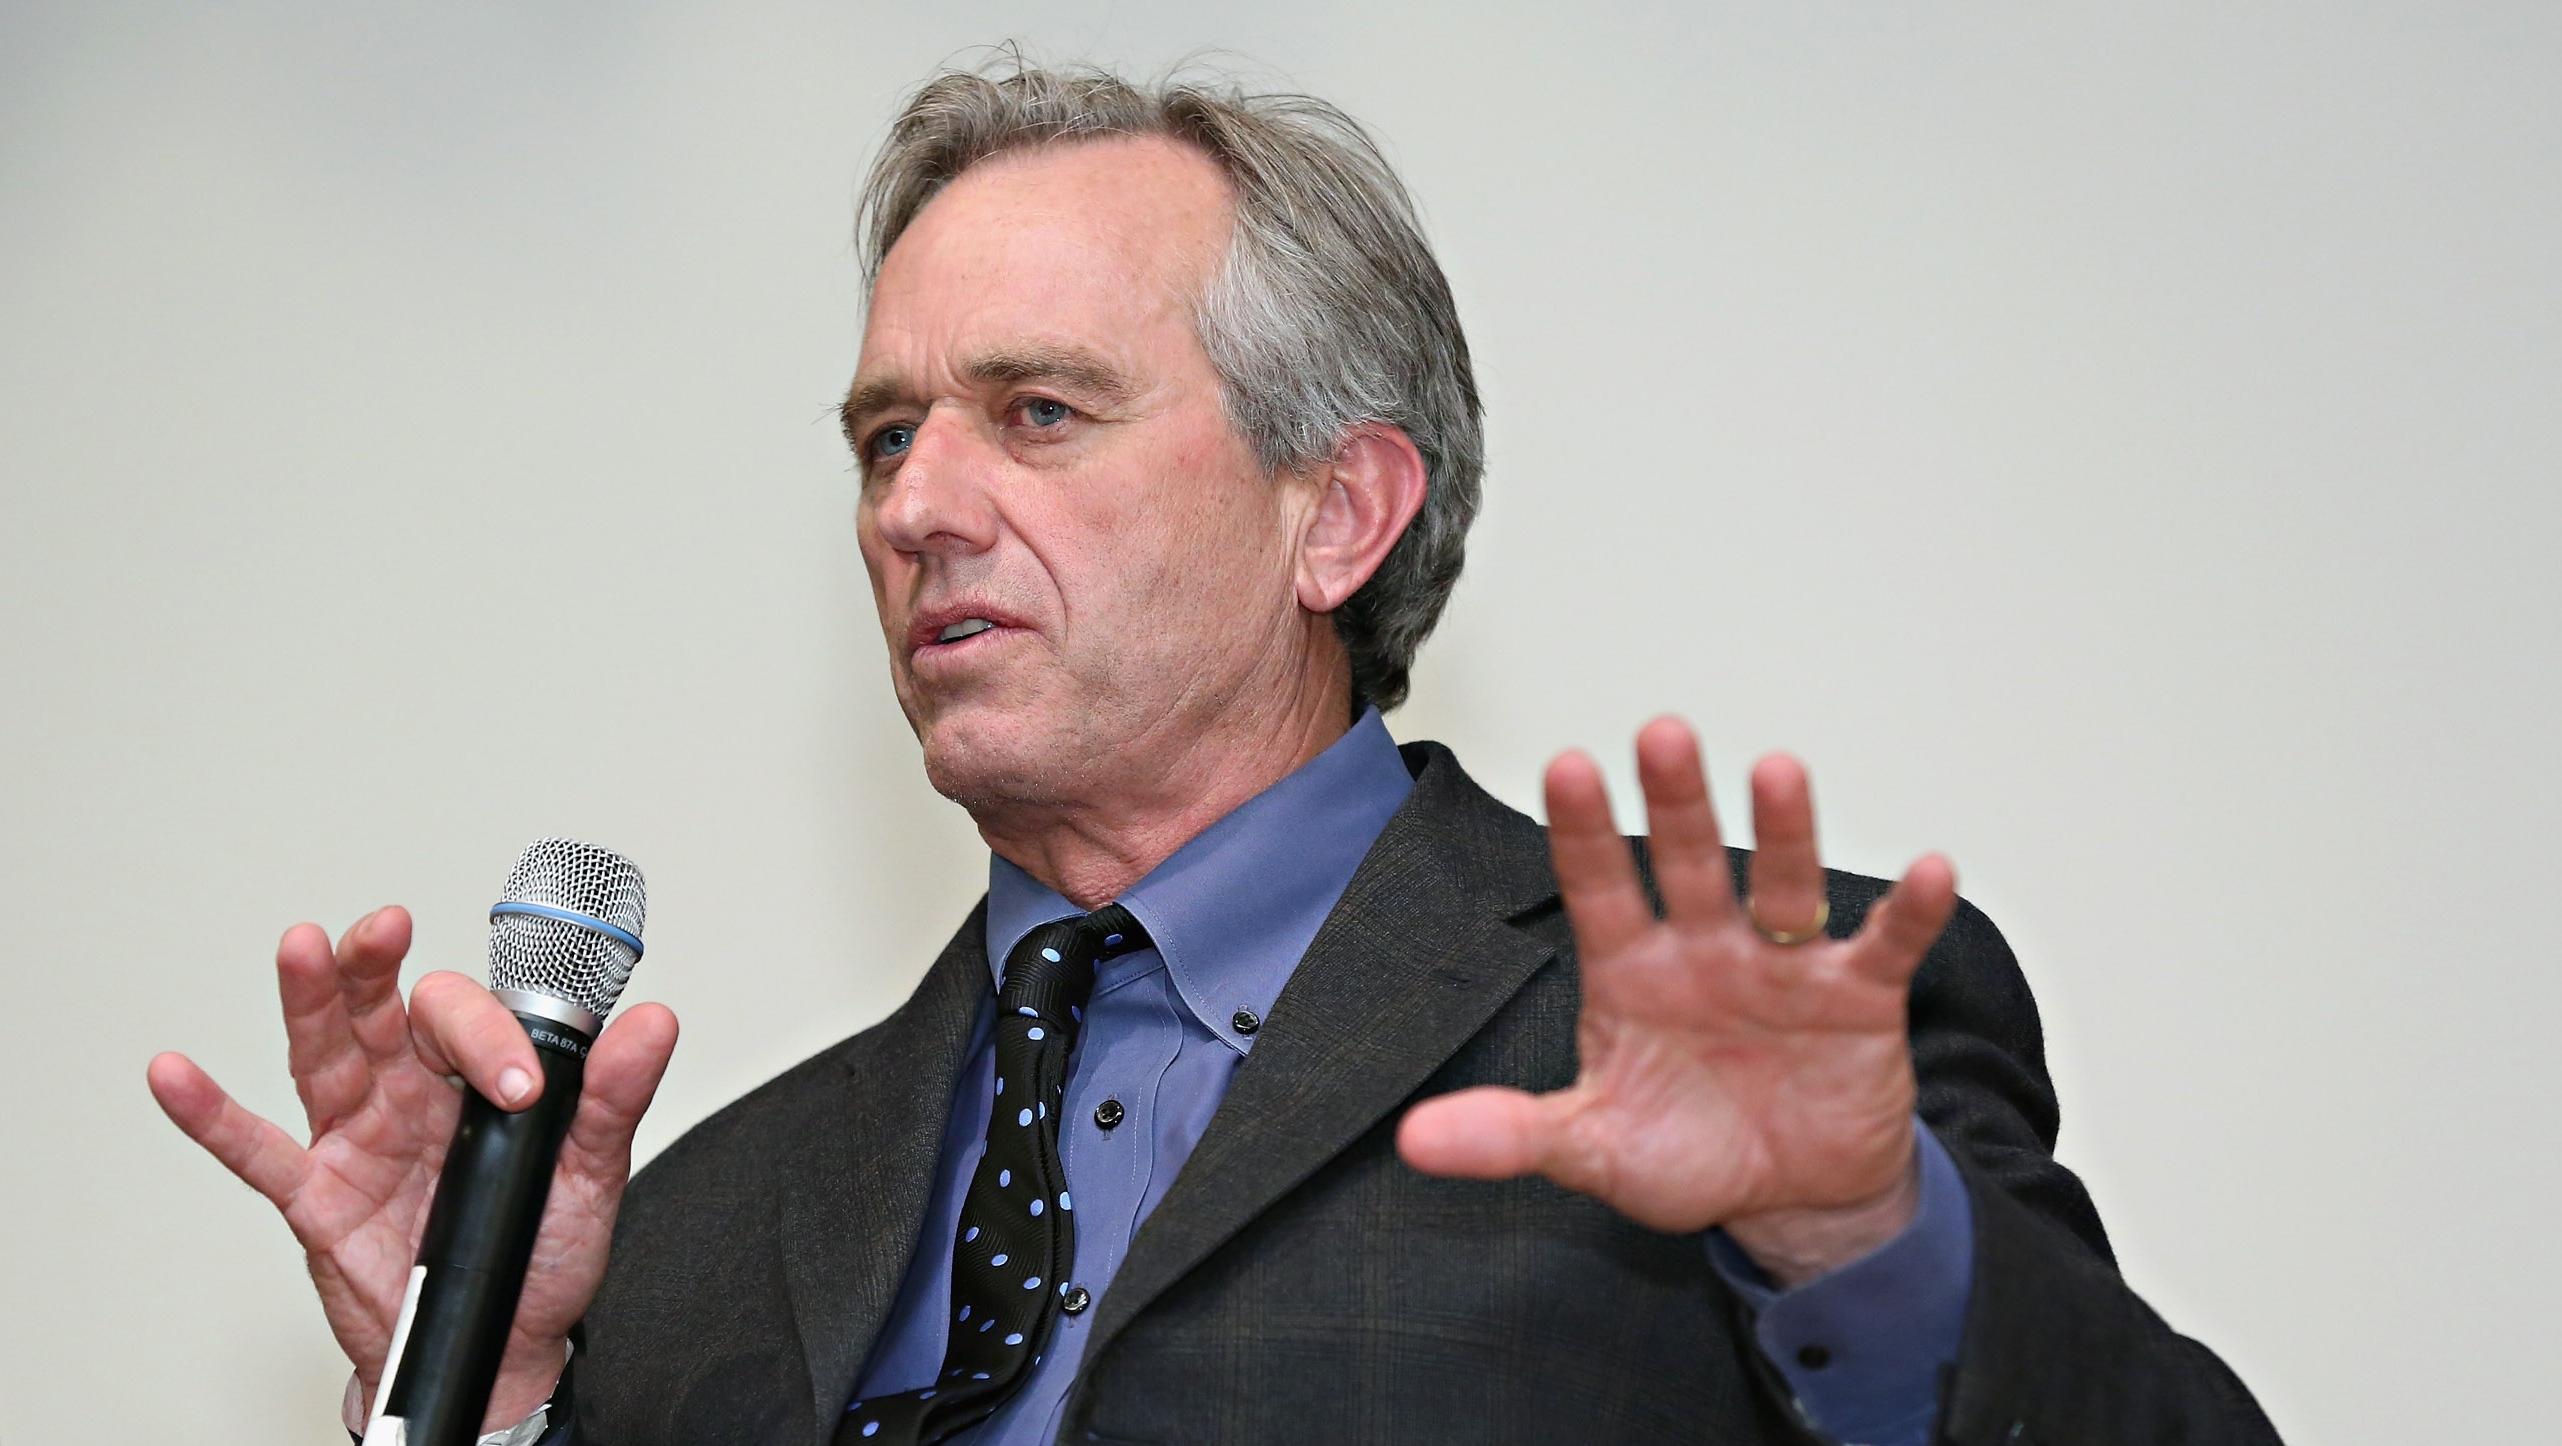 Trump Meets With Vaccine Skeptic >> Robert Kennedy Jr Says He Will Chair Vaccination Safety Committee